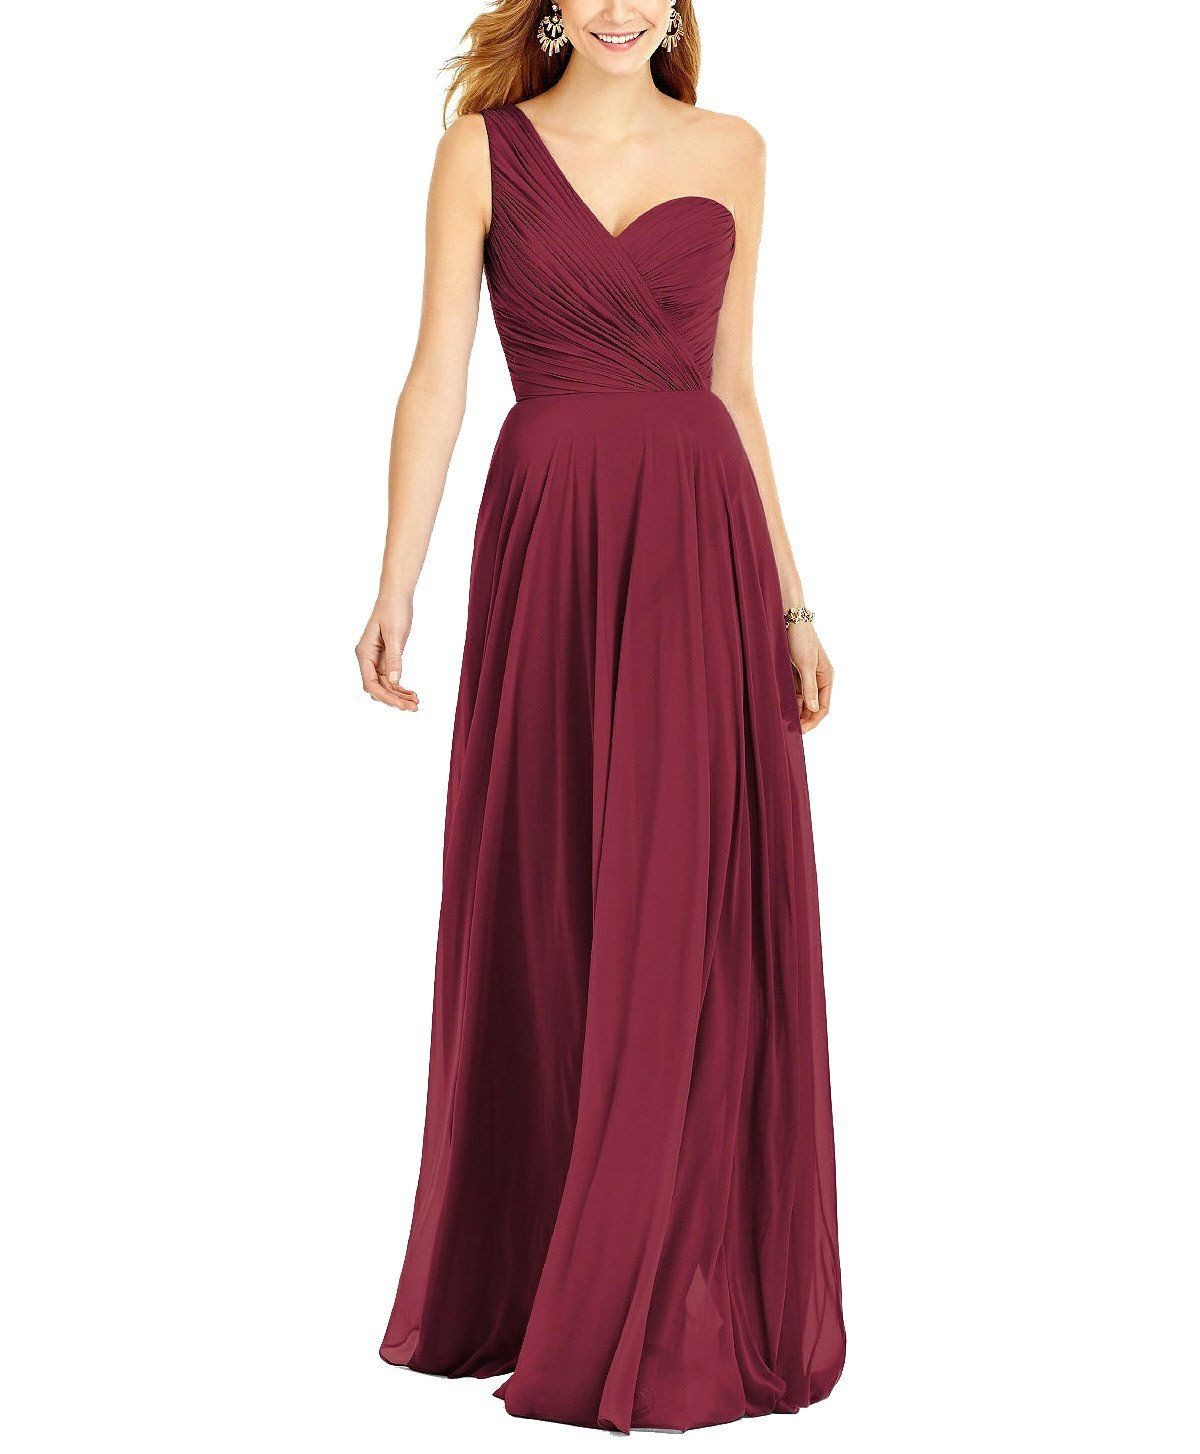 Description After Six Style 6751 Full length